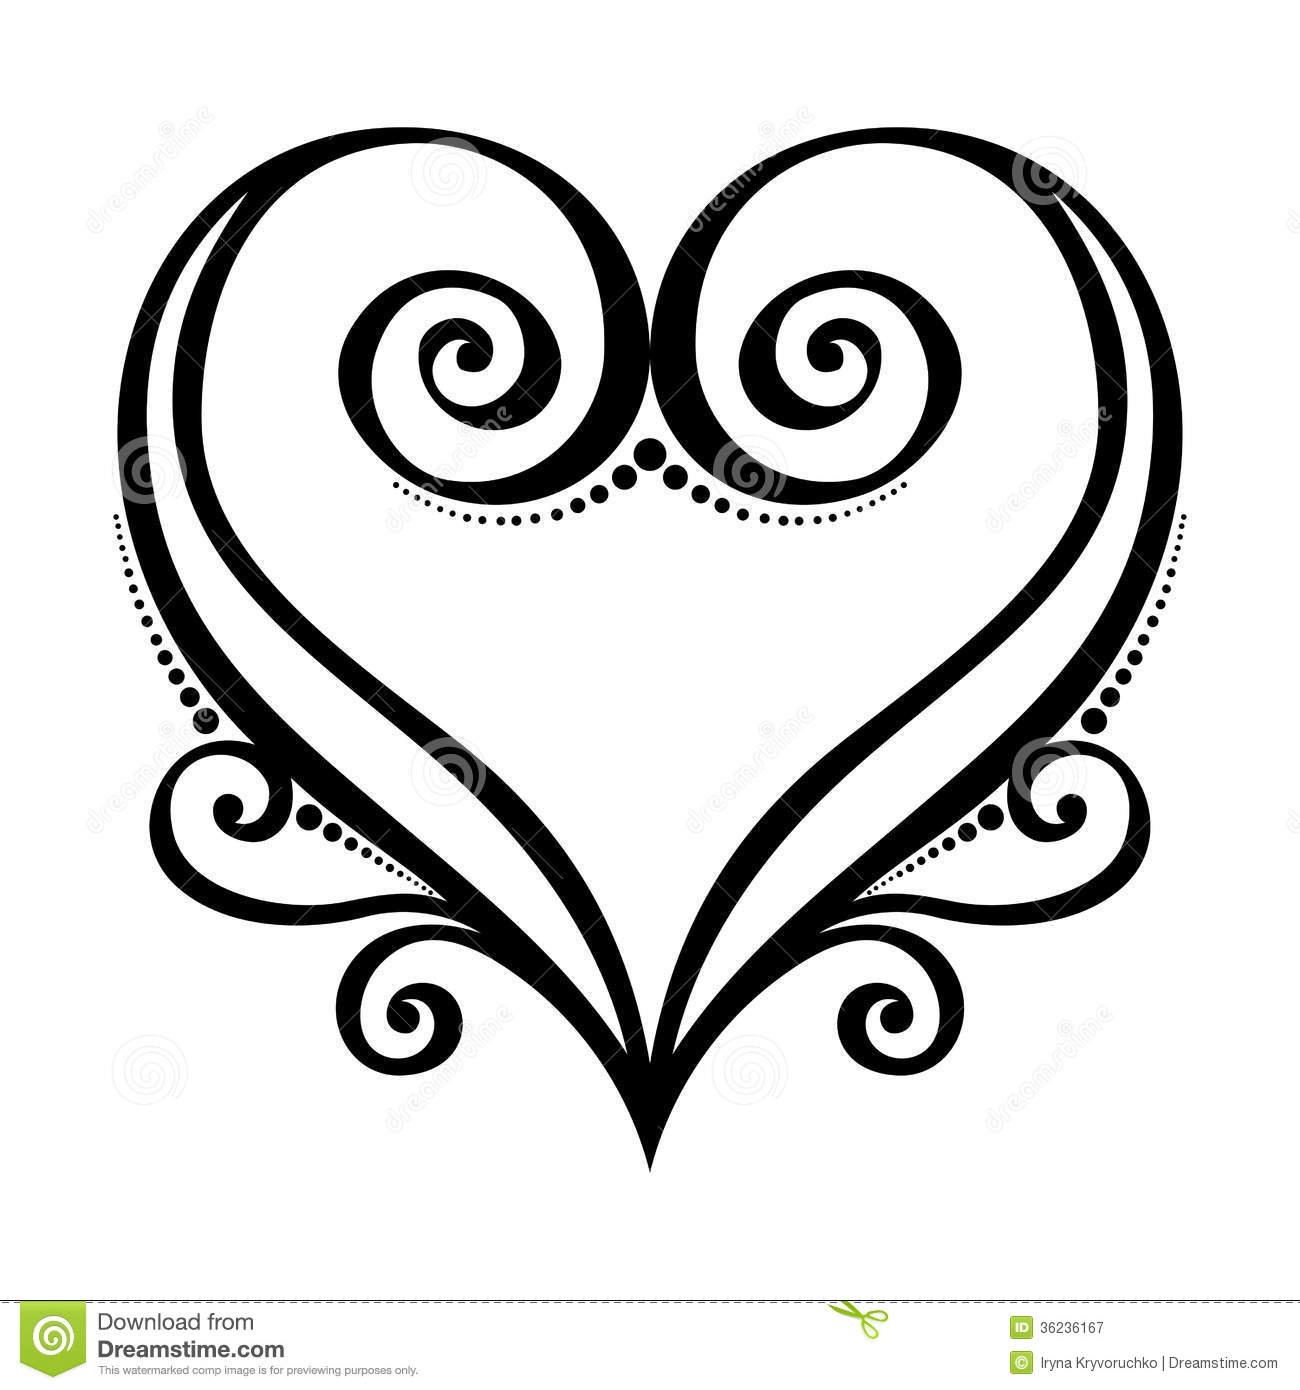 Heart Drawing Clip Art At Getdrawings